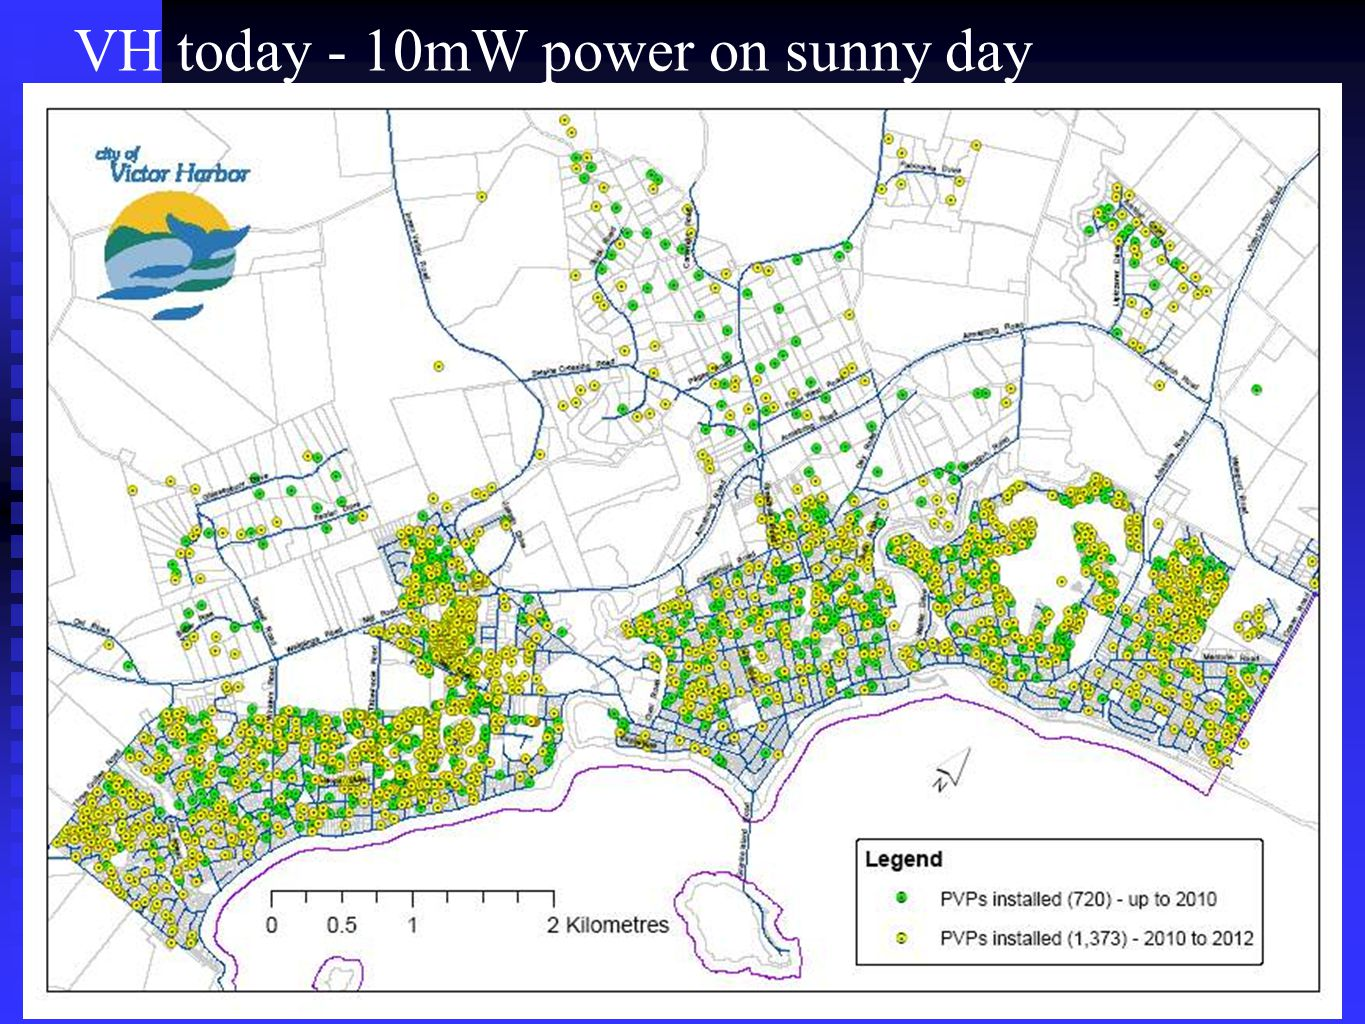 VH today - 10mW power on sunny day